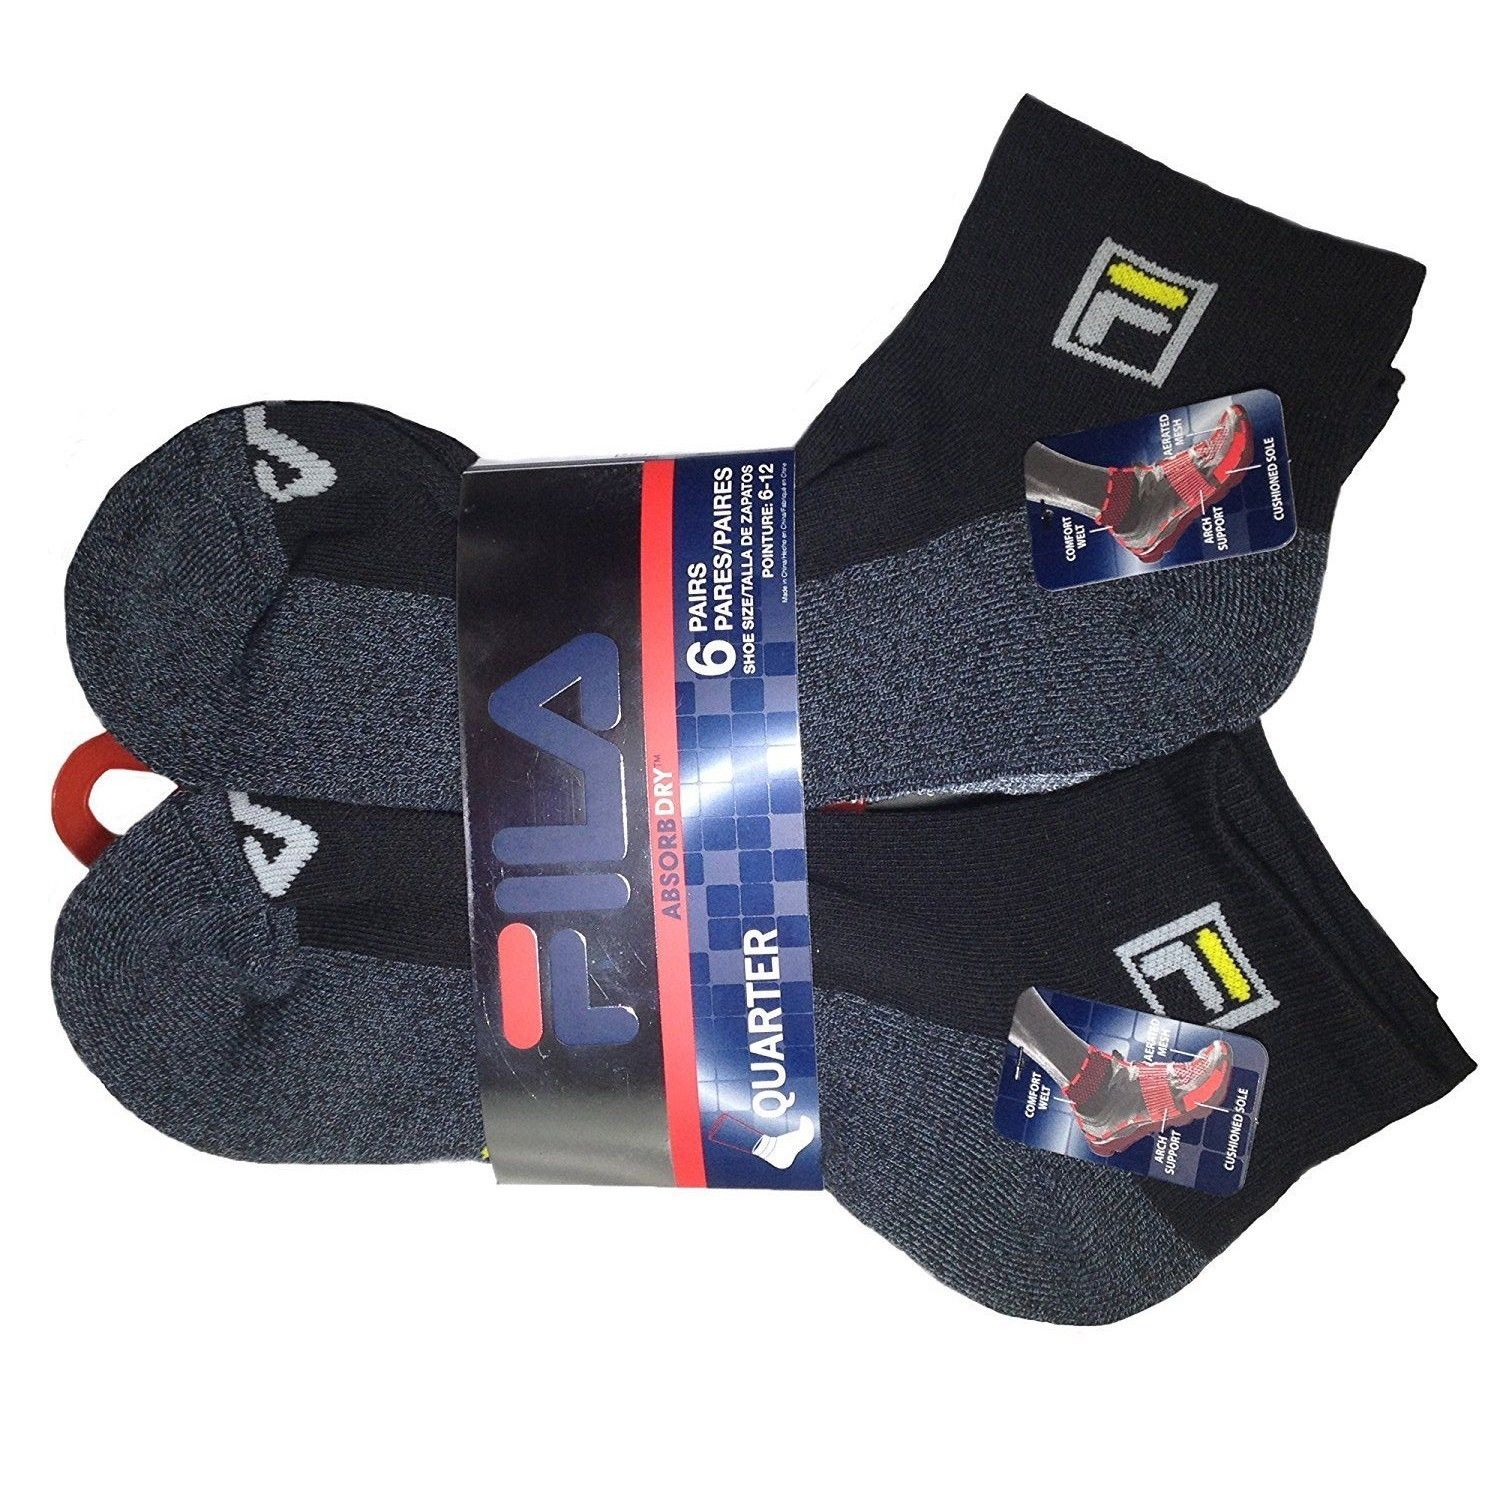 FILA-Men-039-s-6-Pack-Classic-Sport-Athletic-Gym-Moisture-Control-Absorb-Dry-Socks miniature 31